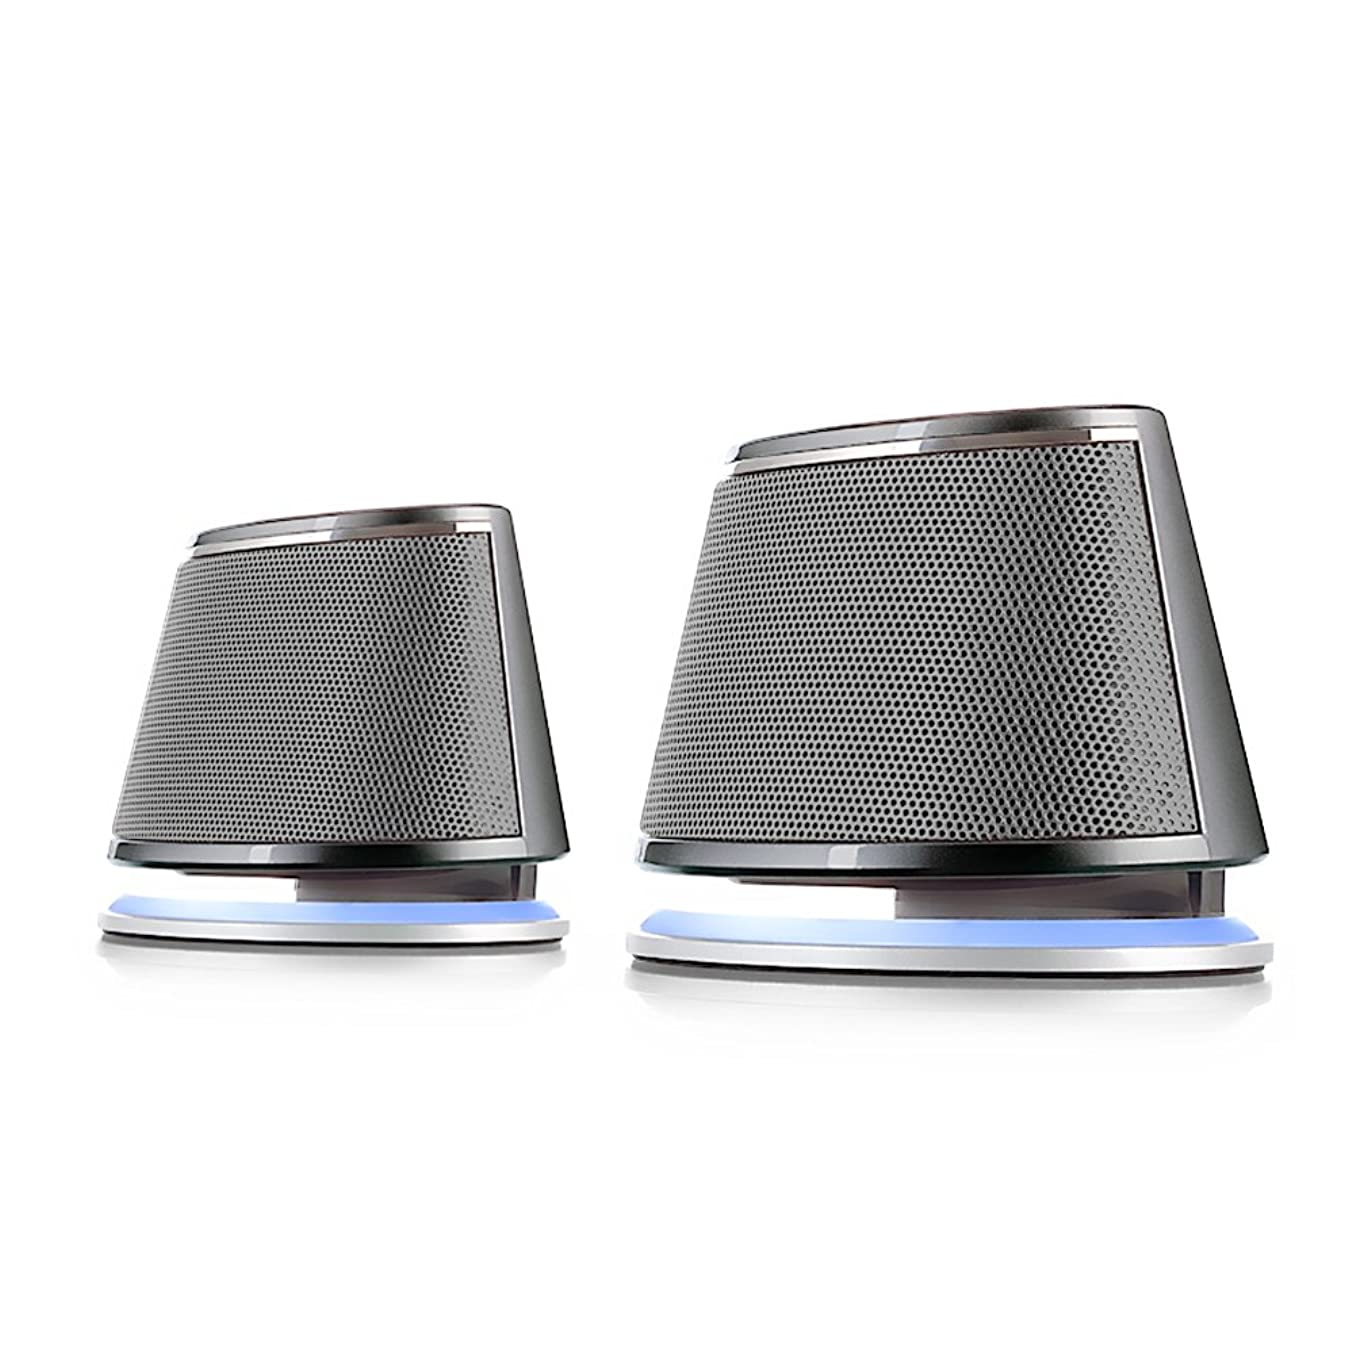 Satechi Dual Sonic Speaker 2.0 Channel Computer Speakers - Compatible with iMac, 2015 MacBook Pro, MacBook Air, Dell, HP XPS, Sony, Samsung, Asus and More (Silver)